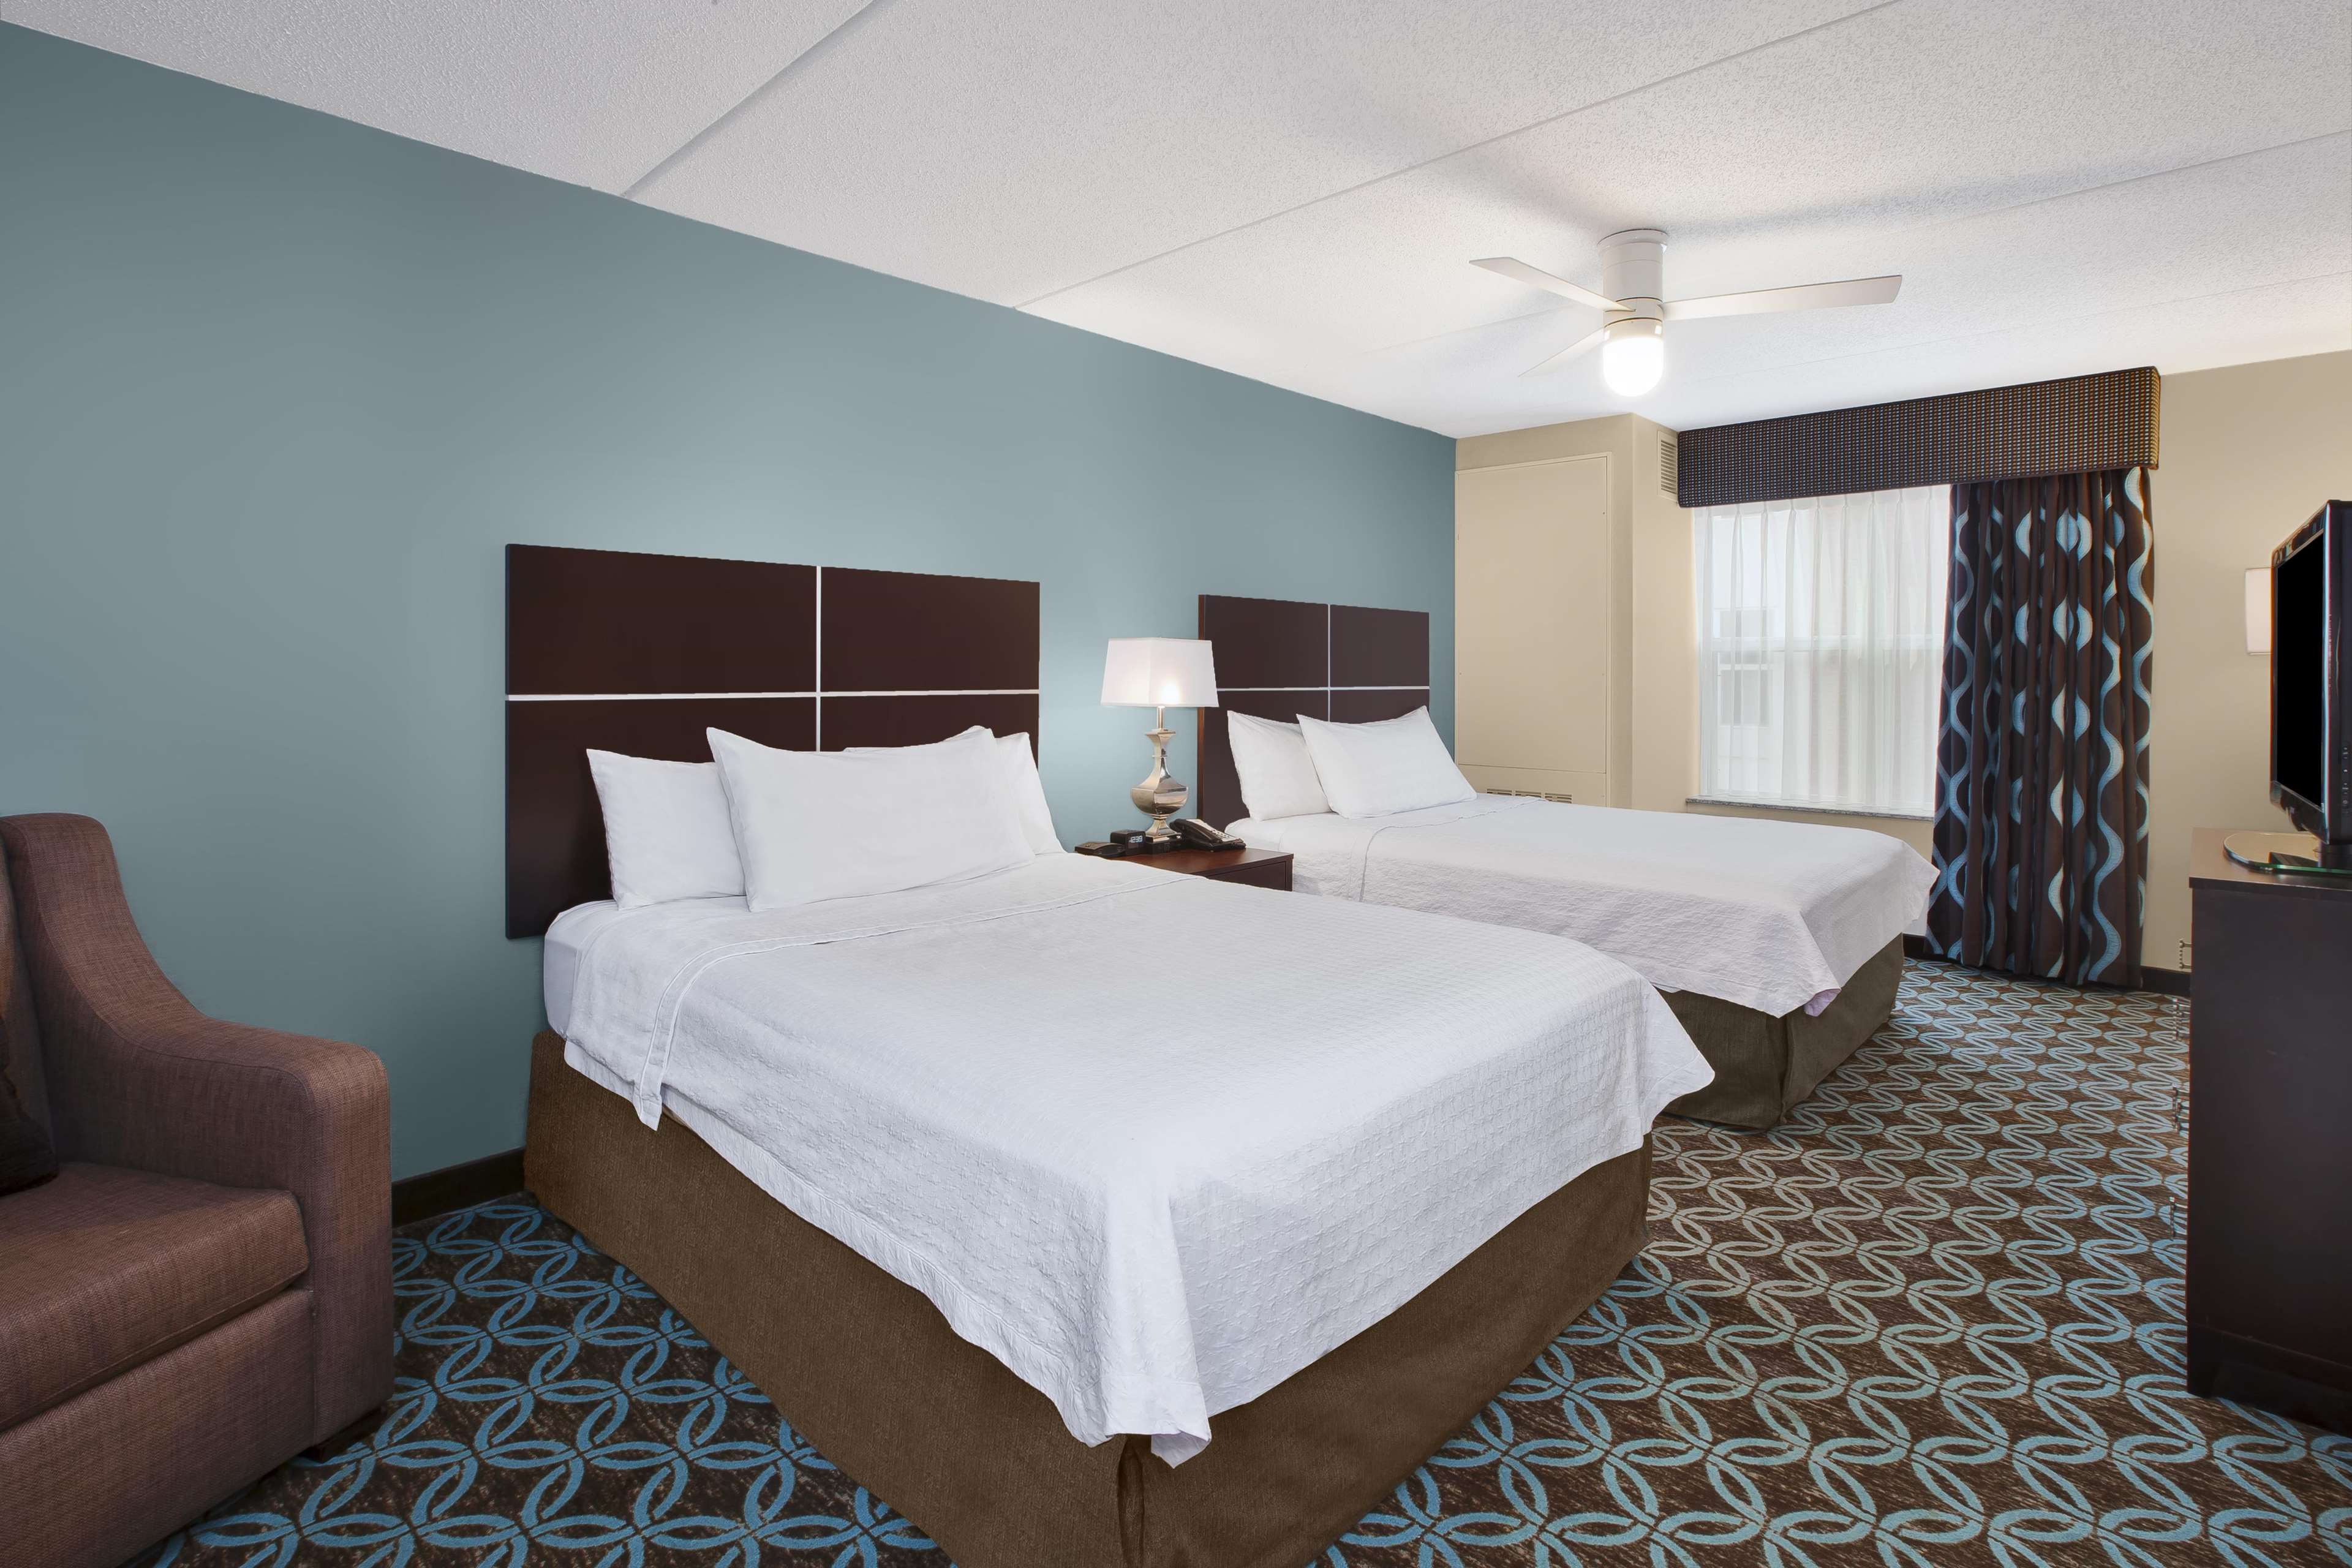 Homewood Suites by Hilton Boston/Canton, MA image 13